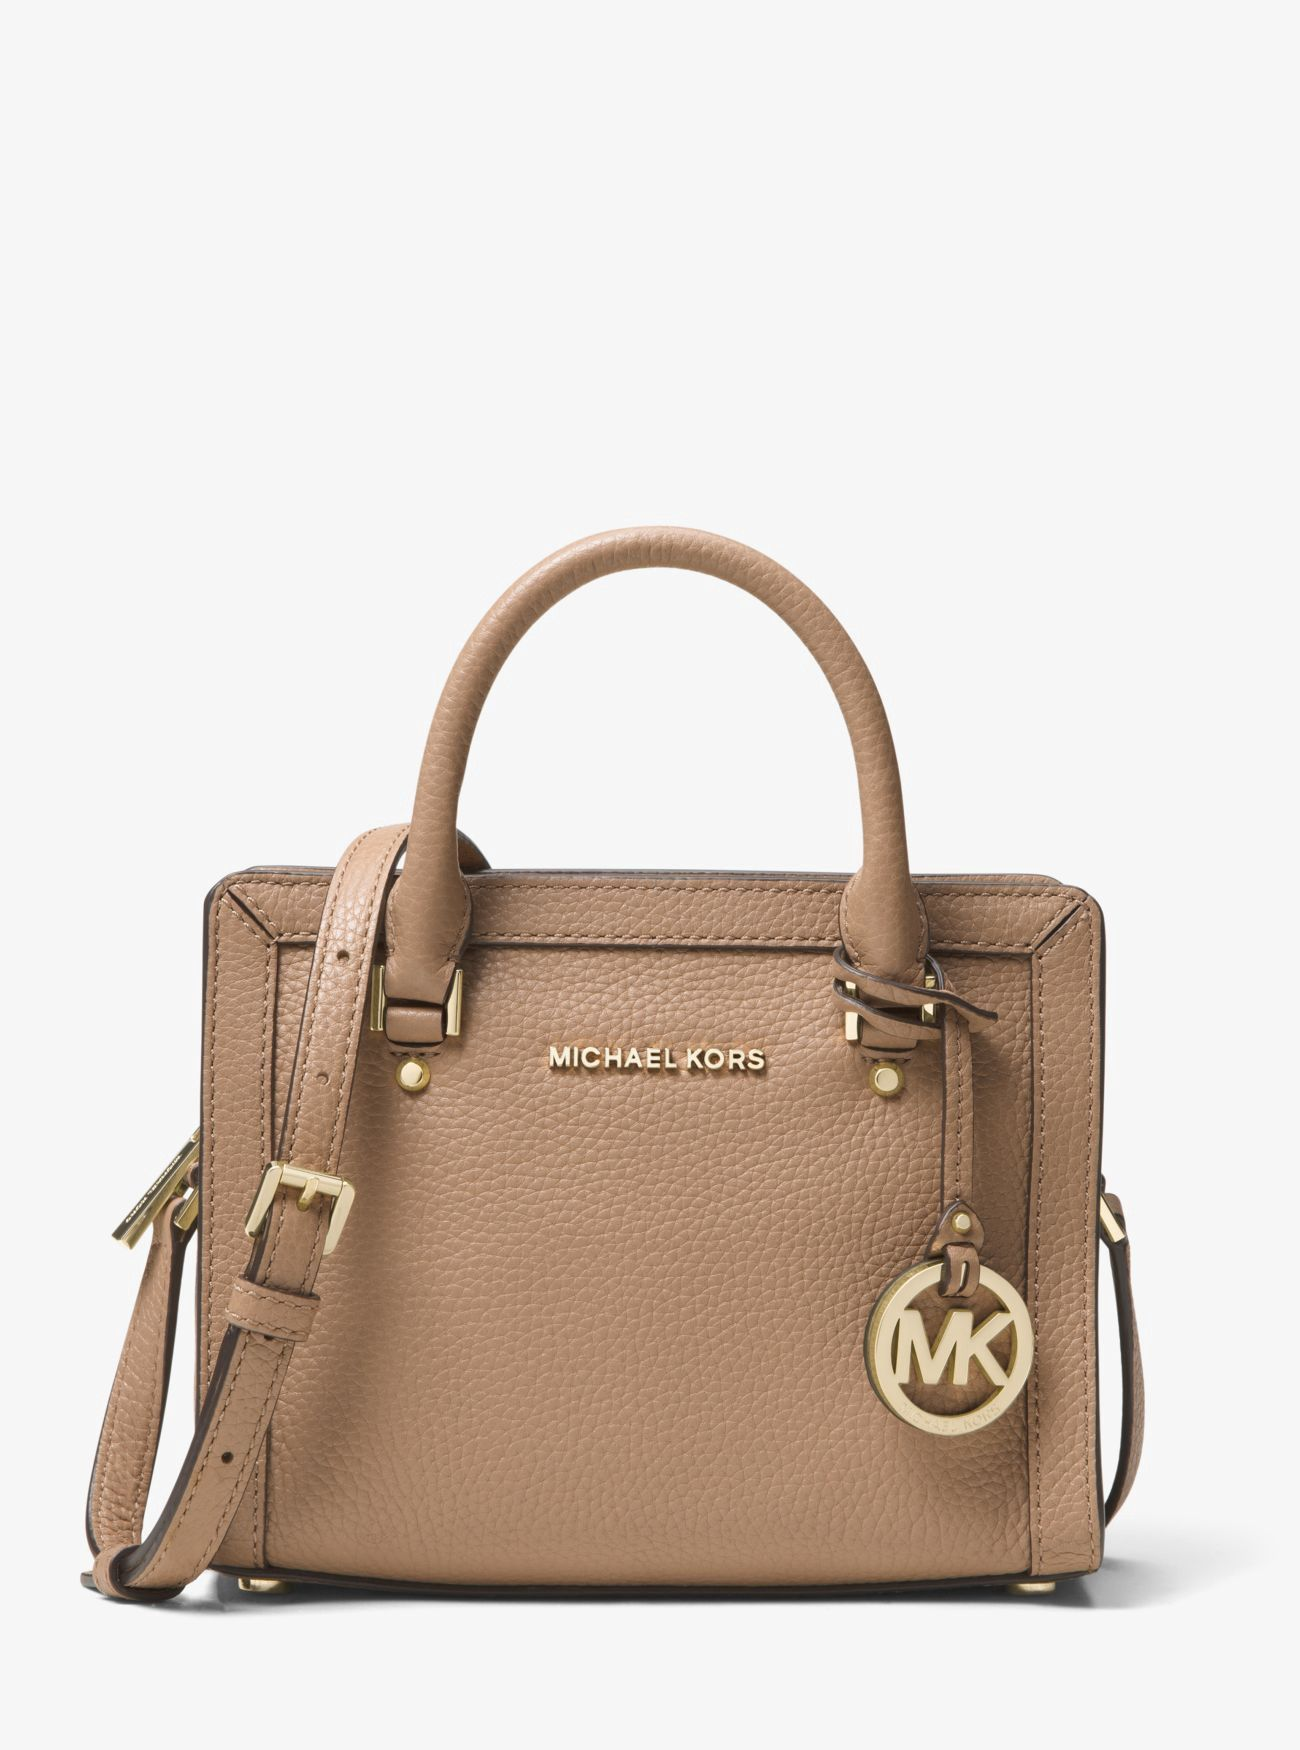 58a0e2f9d856 MICHAEL KORS Collins Medium Leather Messenger.  michaelkors  bags   polyester  leather  lining  accessories  shoulder bags  wallet  hand bags